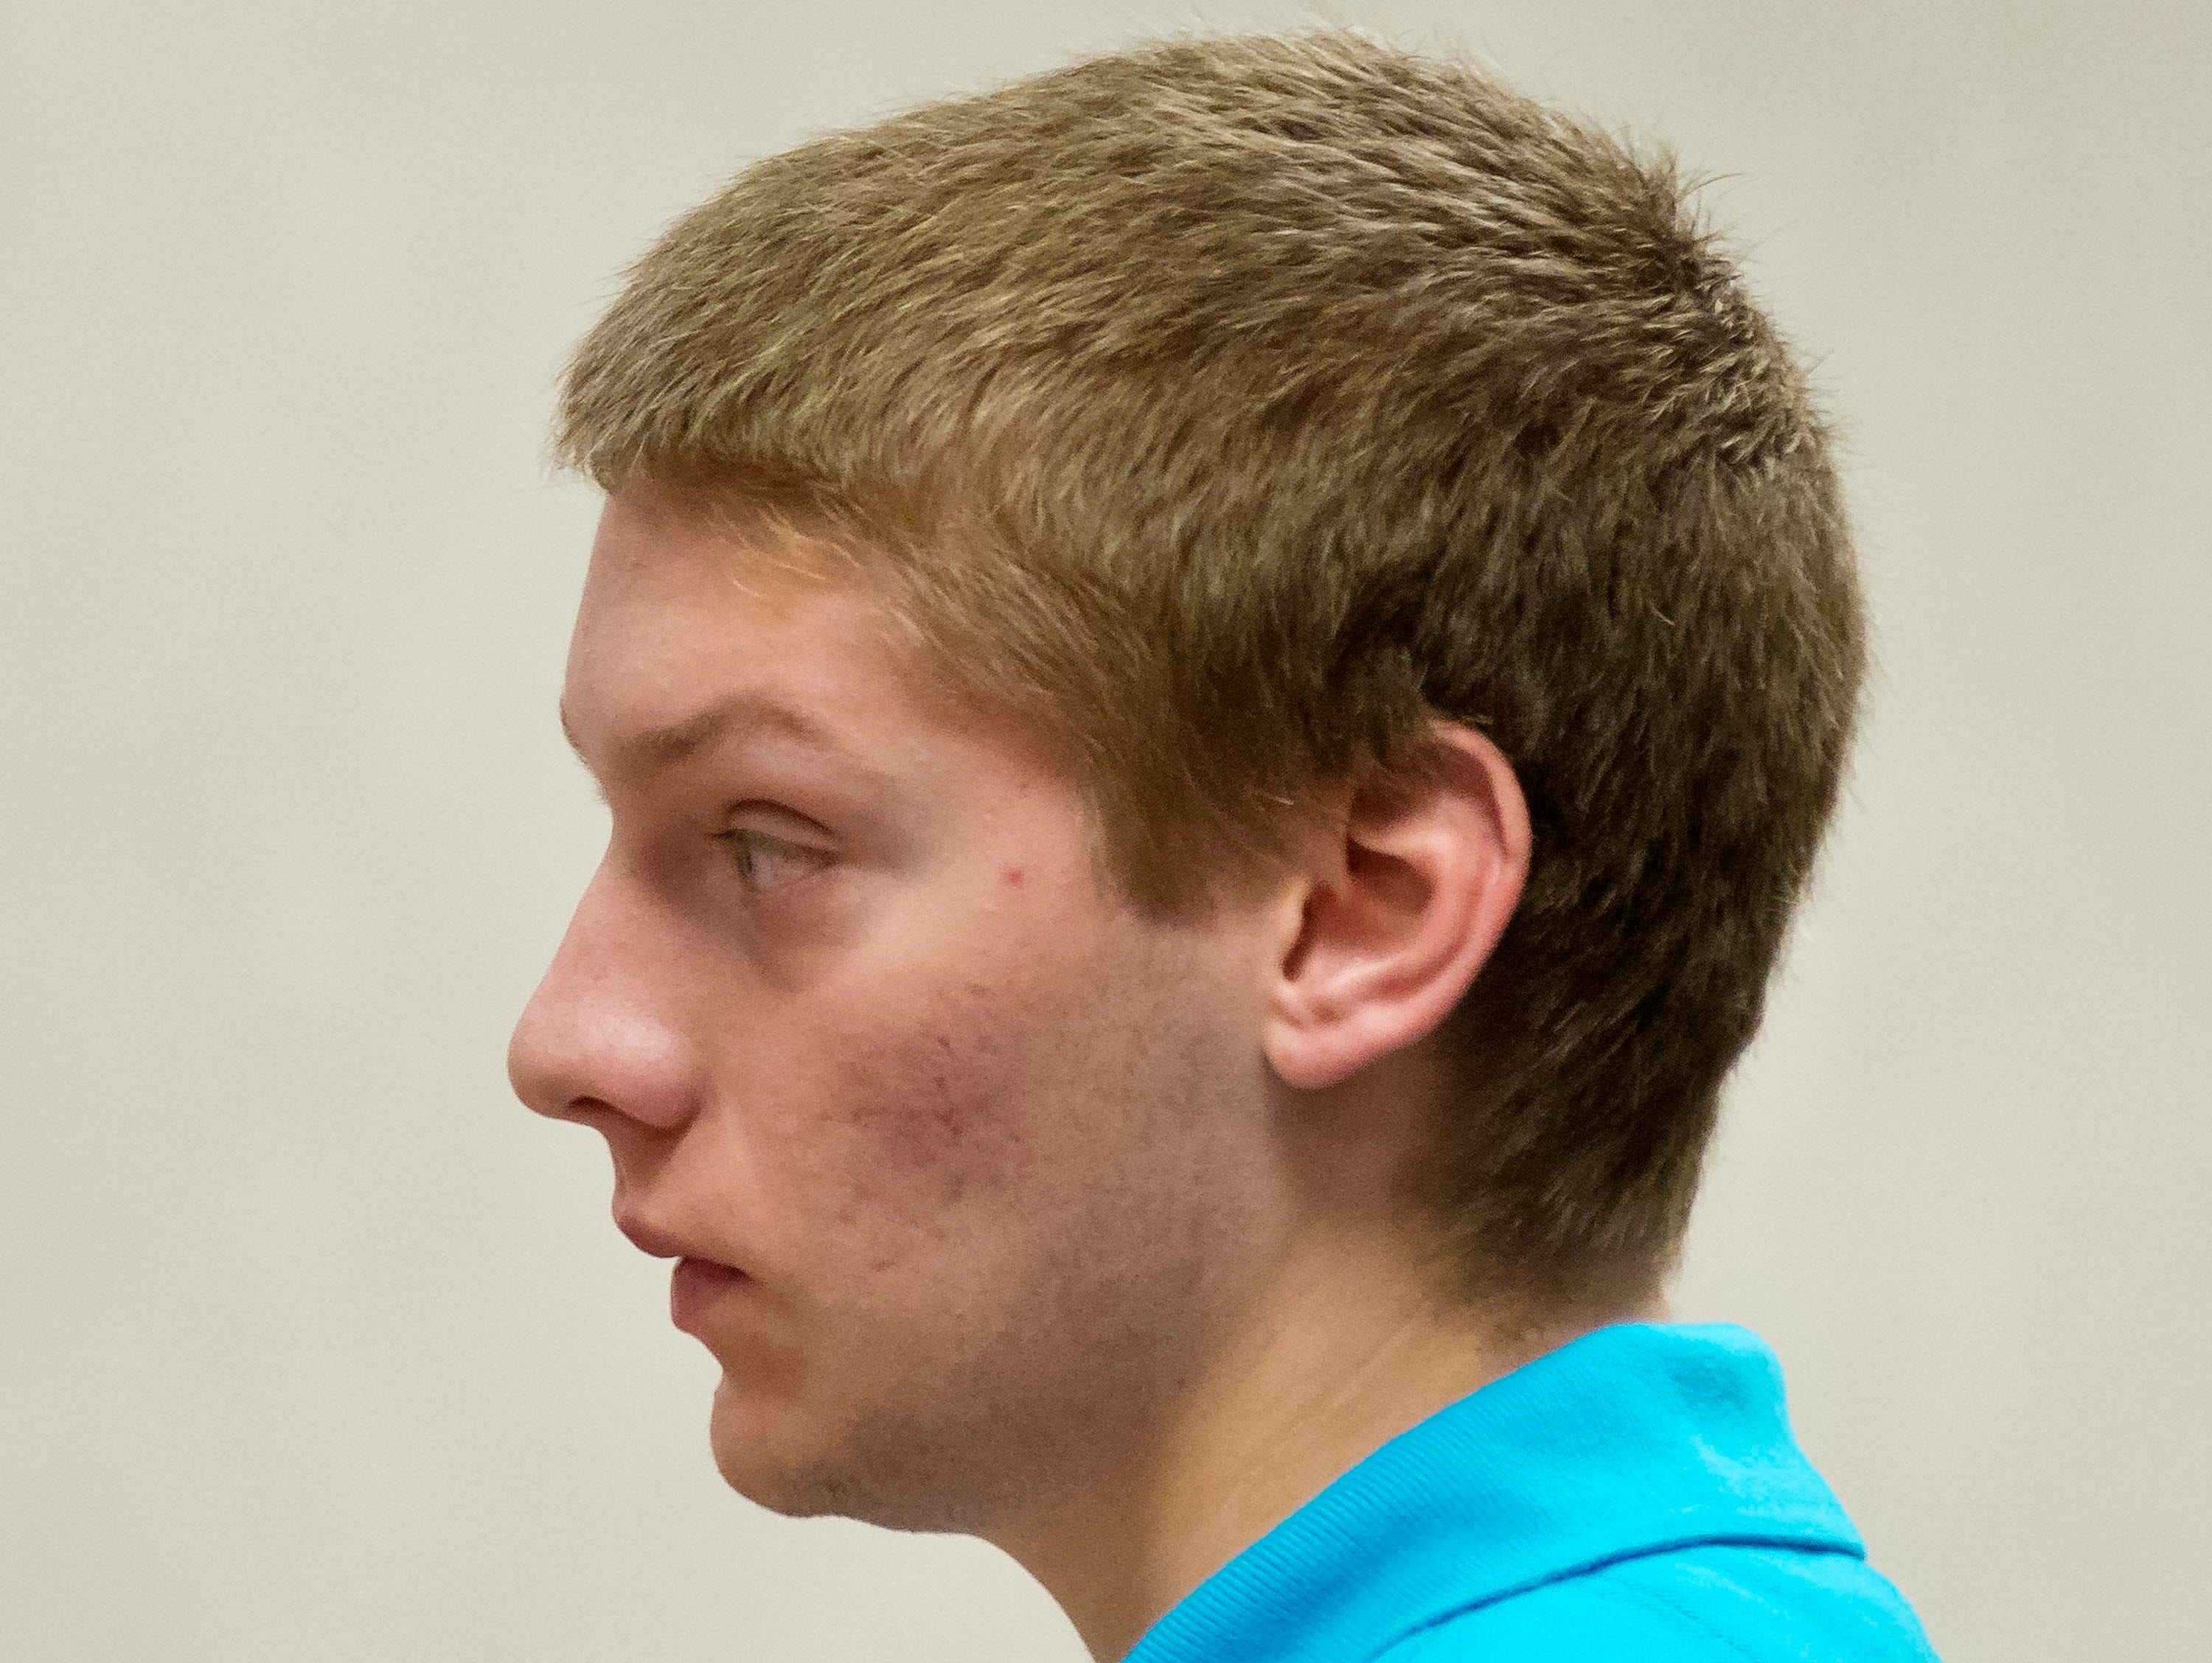 Colby Darling, 18, of Milton, Vt., pleads not guilty Aug. 19, 2014, in Vermont Superior Court in Burlington, Vt., to a simple assault charge.